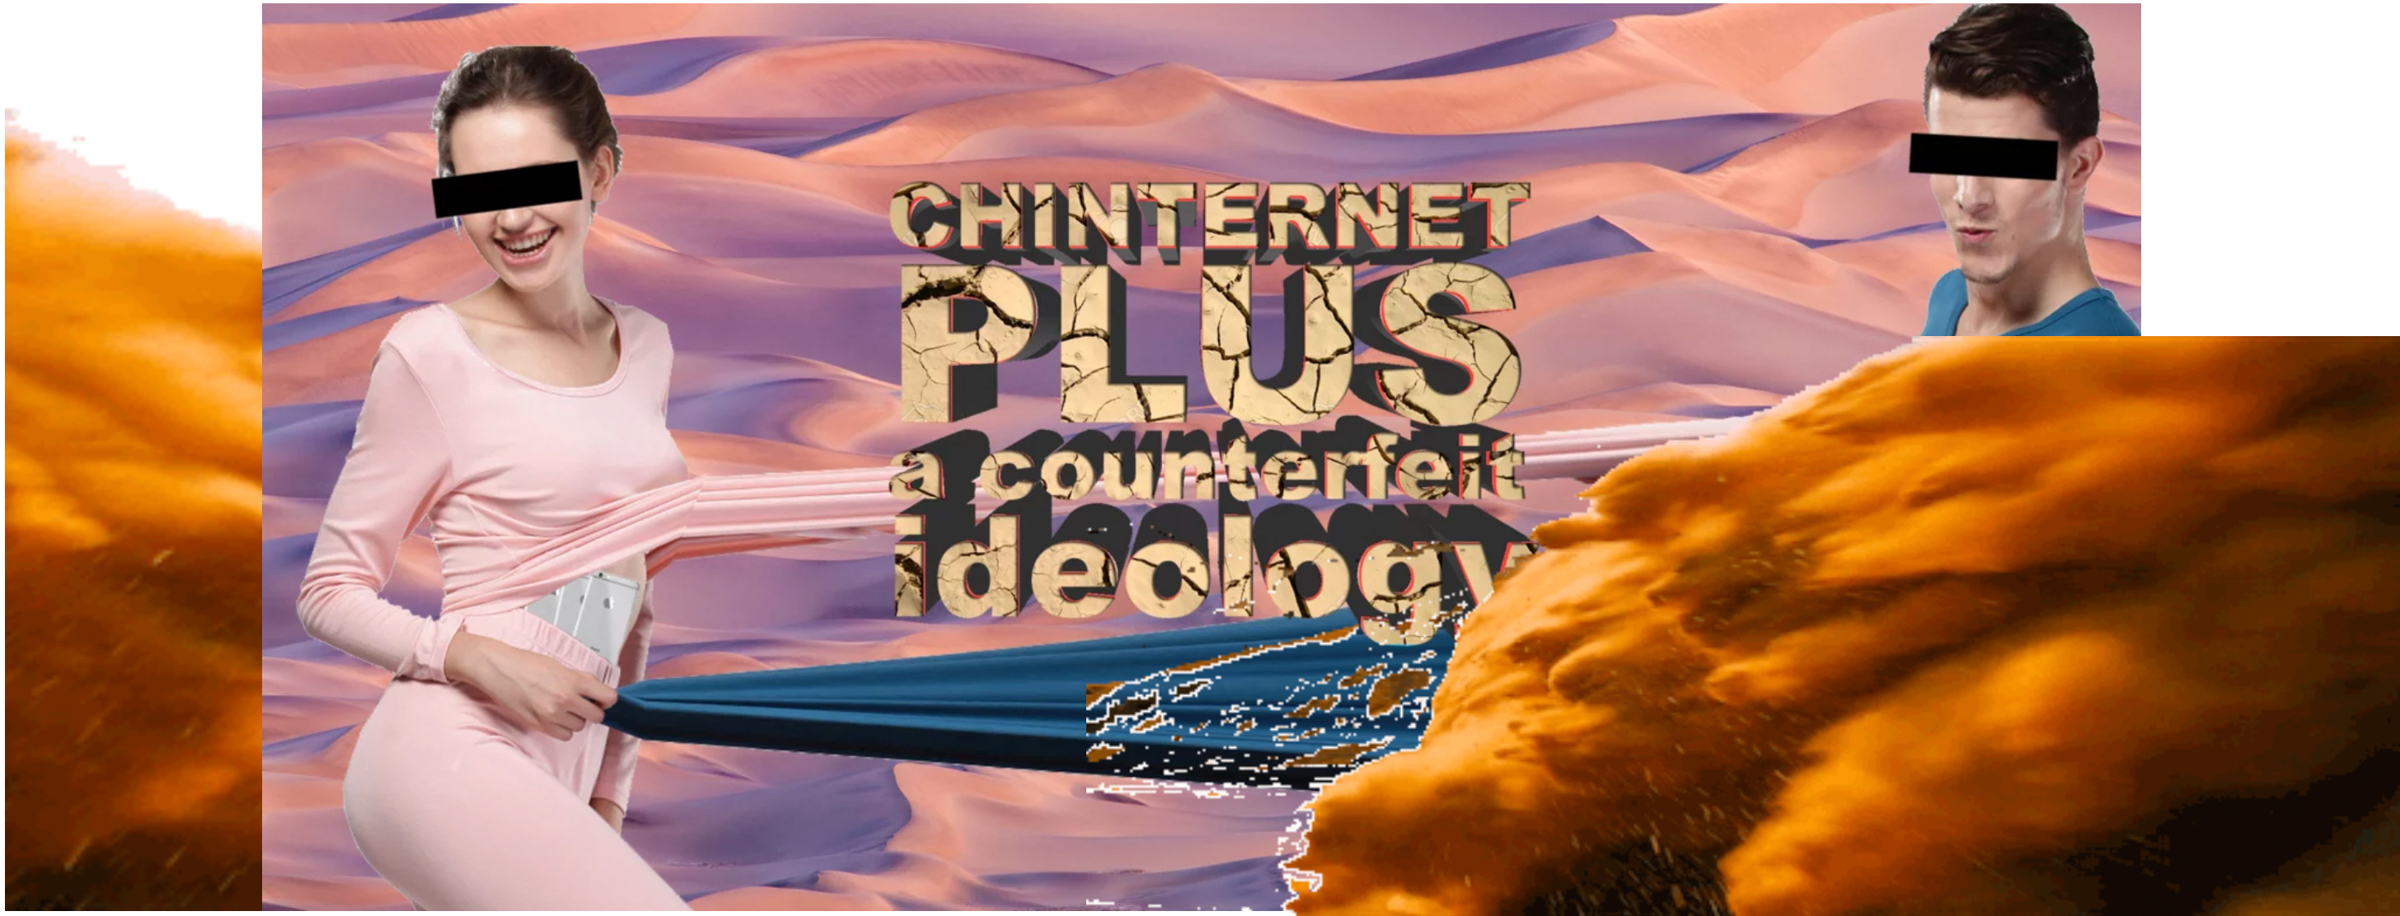 Miao Ying, How to sell a counterfeit ideology II, (GIF animation; element from Chinternet Plus) 2016. Courtesy of the artist.